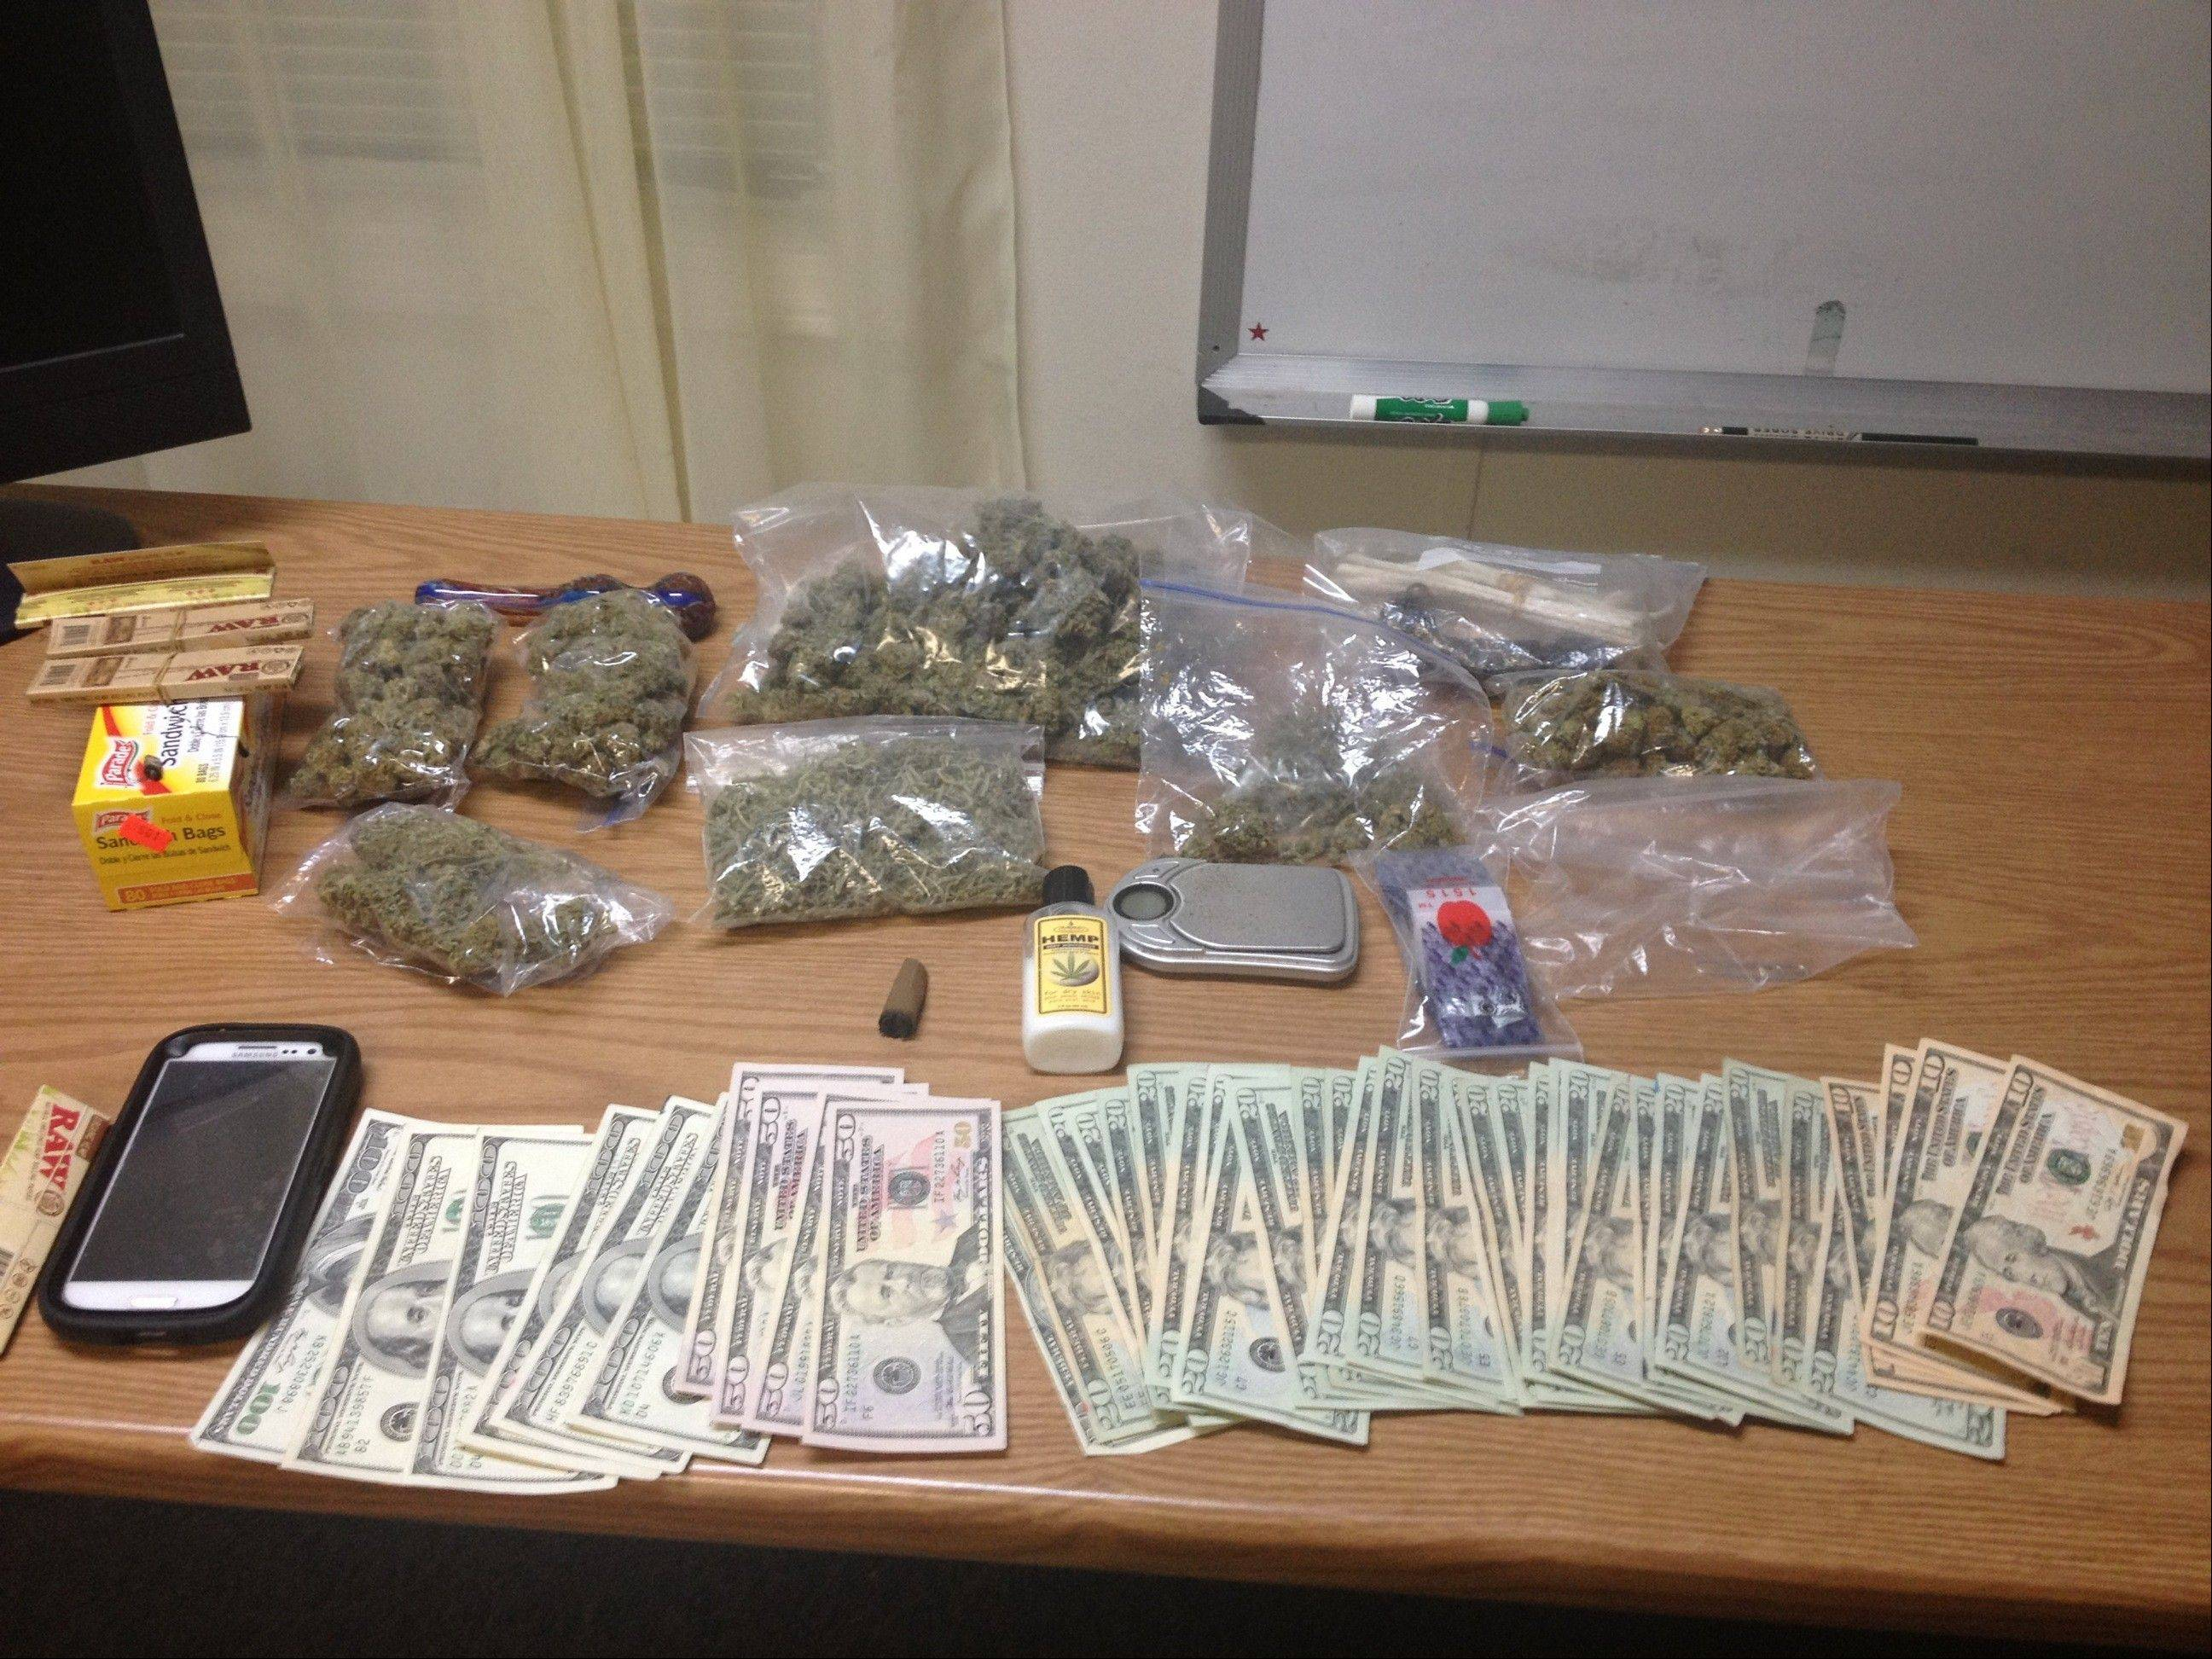 Round Lake Park police say they recovered $1,958 in cash, 263 grams of marijuana with a street value of roughly $3,000 and other items from three suspected street gang members facing drug charges.